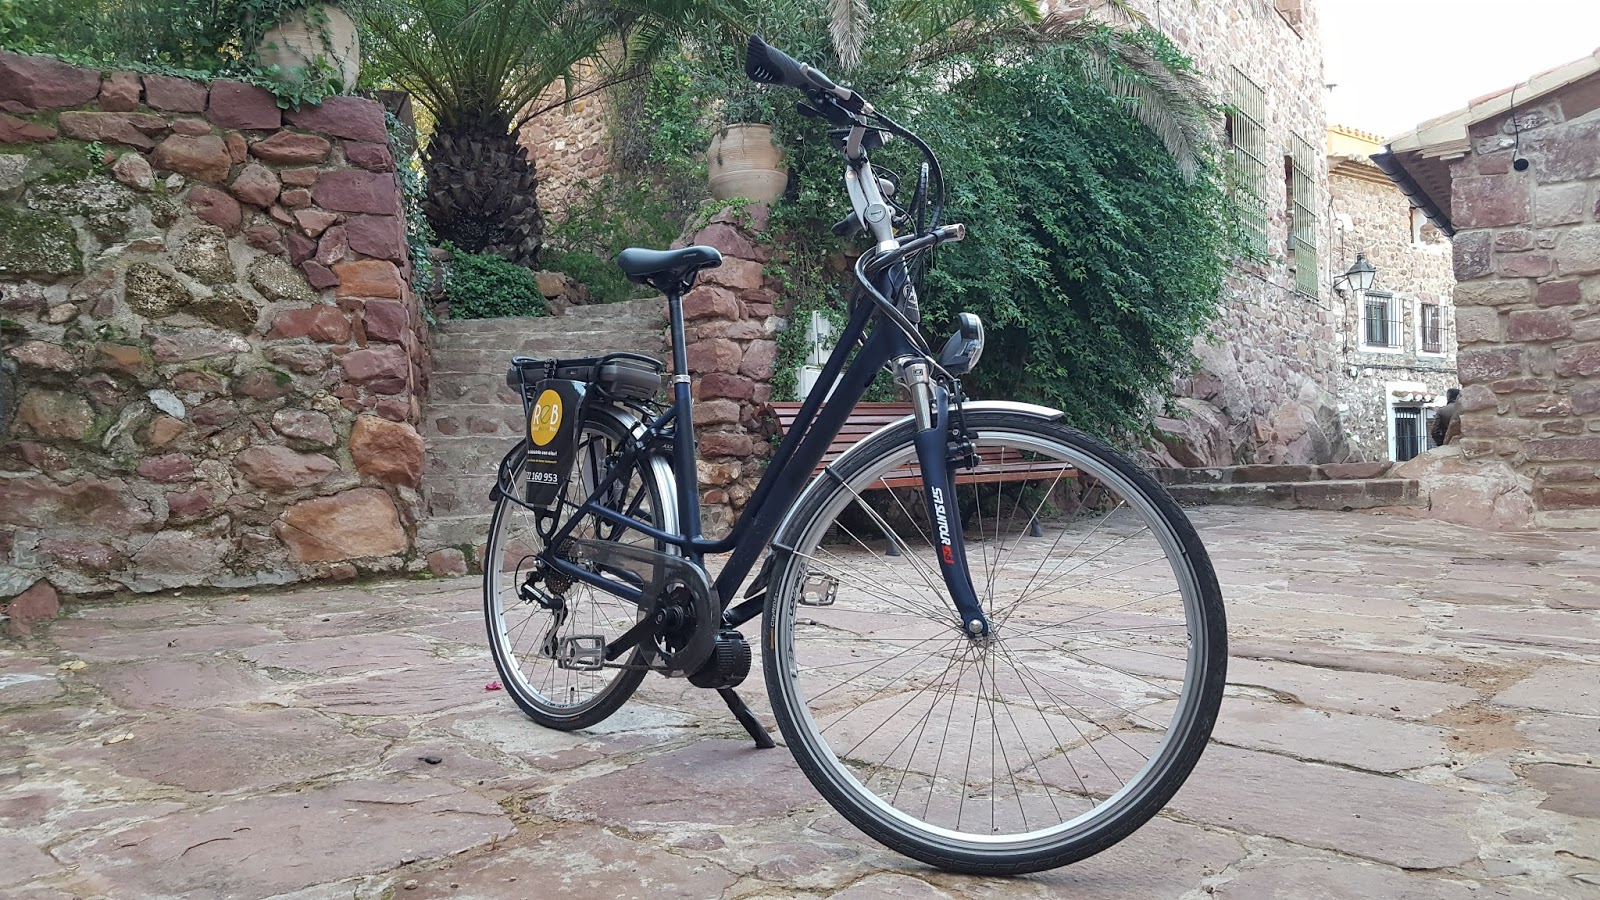 REB (Rural Electric Bike), Villafamés, Castellón, Spain